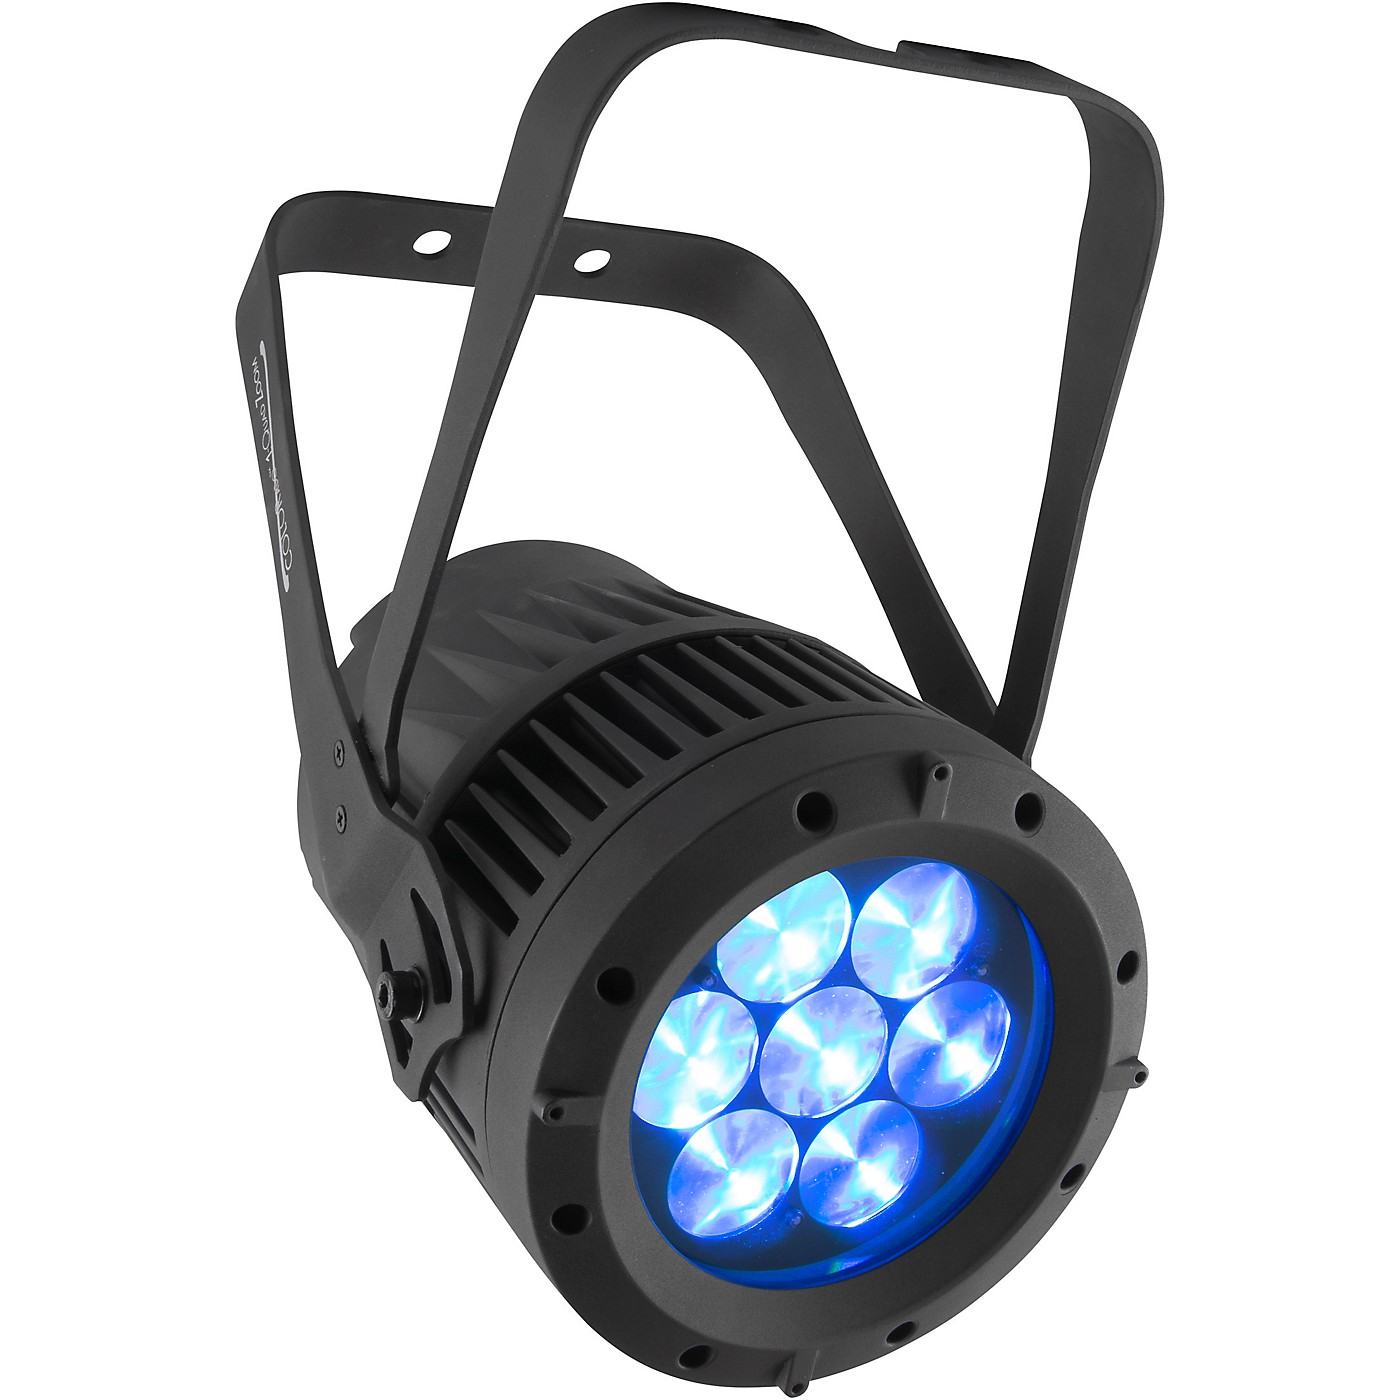 CHAUVET Professional COLORado 1-Quad Zoom Outdoor RGBW LED Wash Light thumbnail